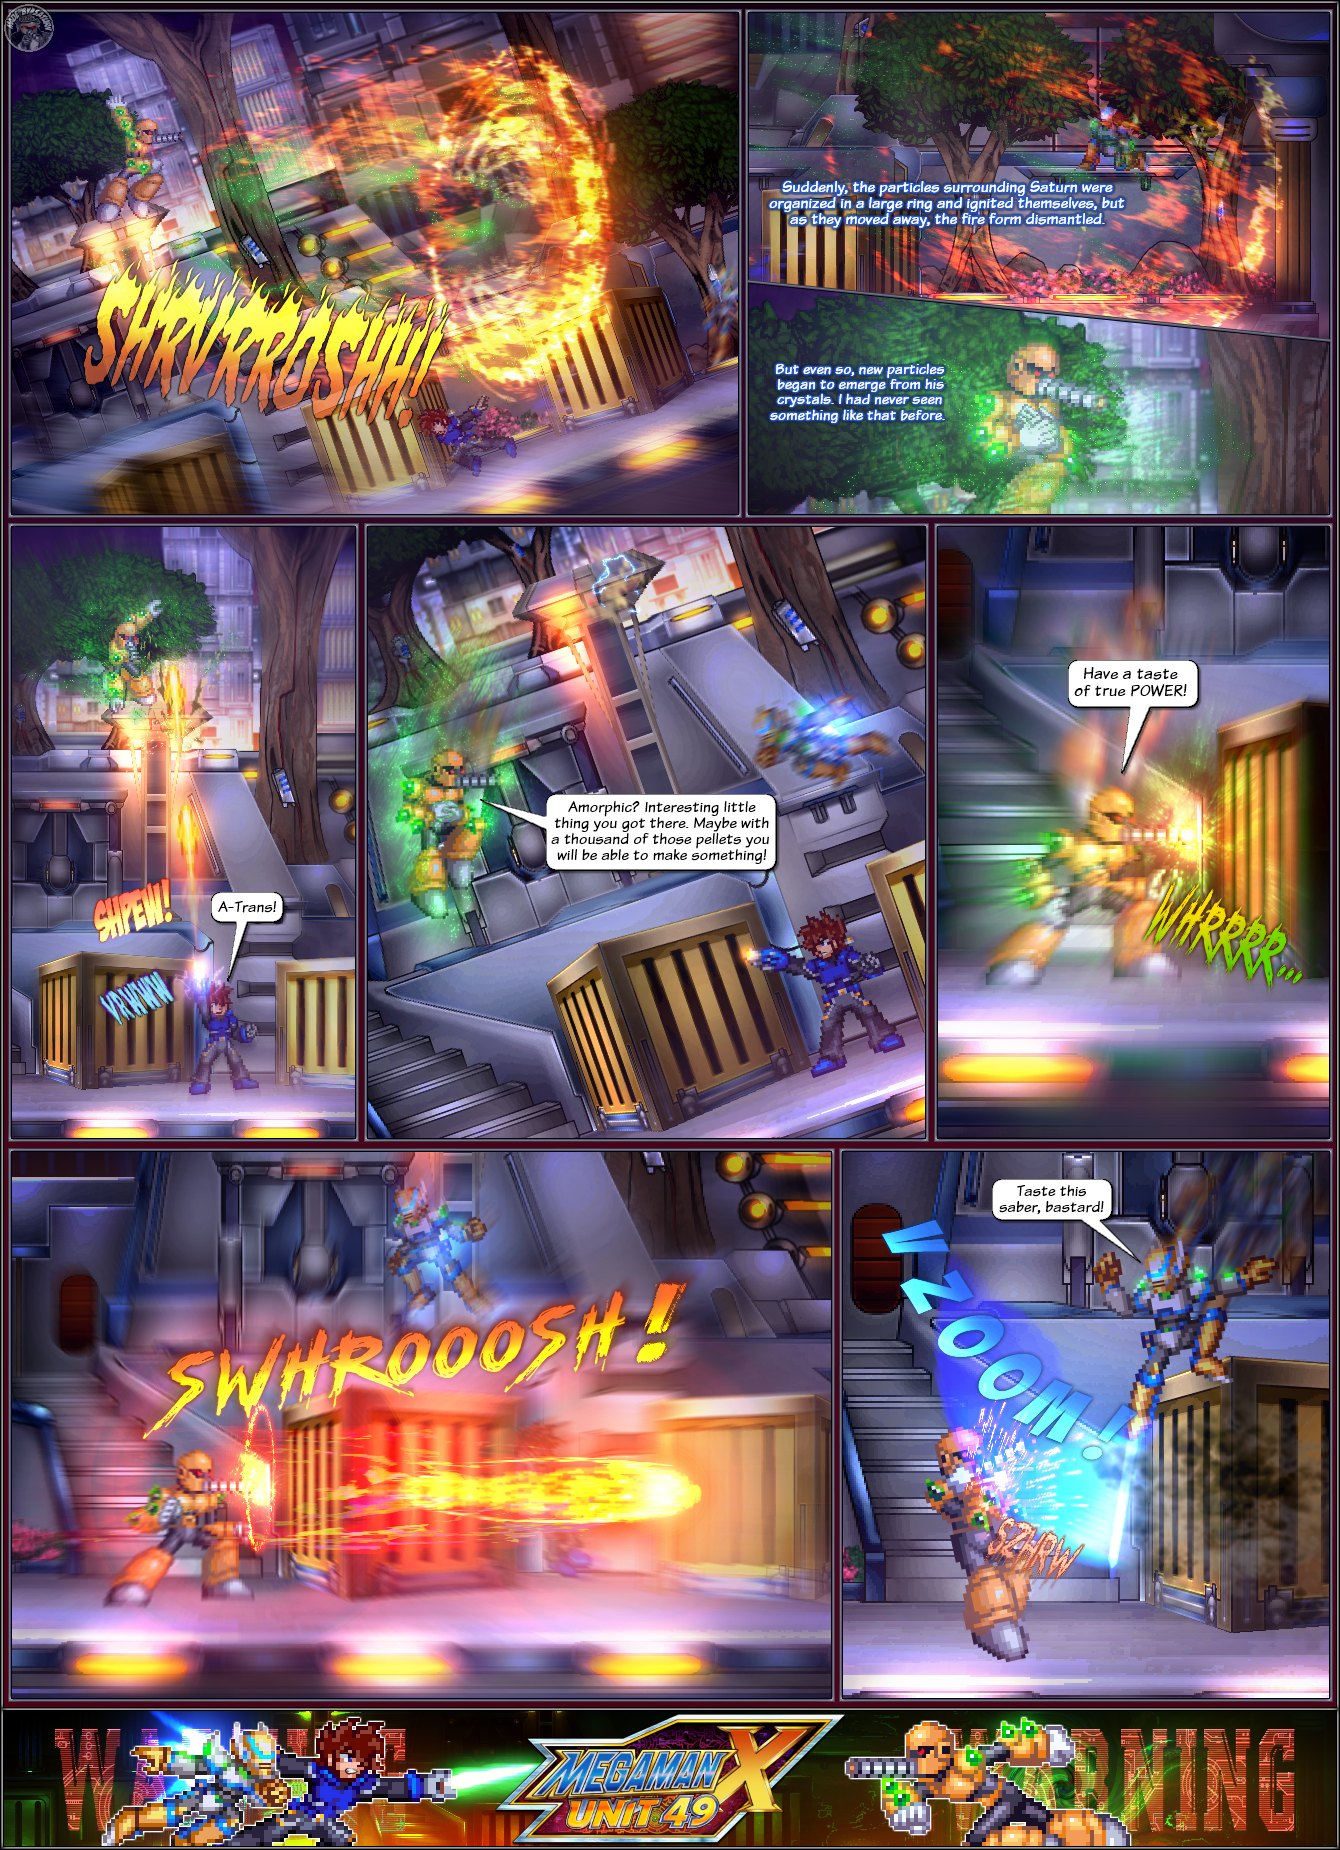 MMXU49 S2C9: Ineluctable Demise (Pg 6) by IrregularSaturn